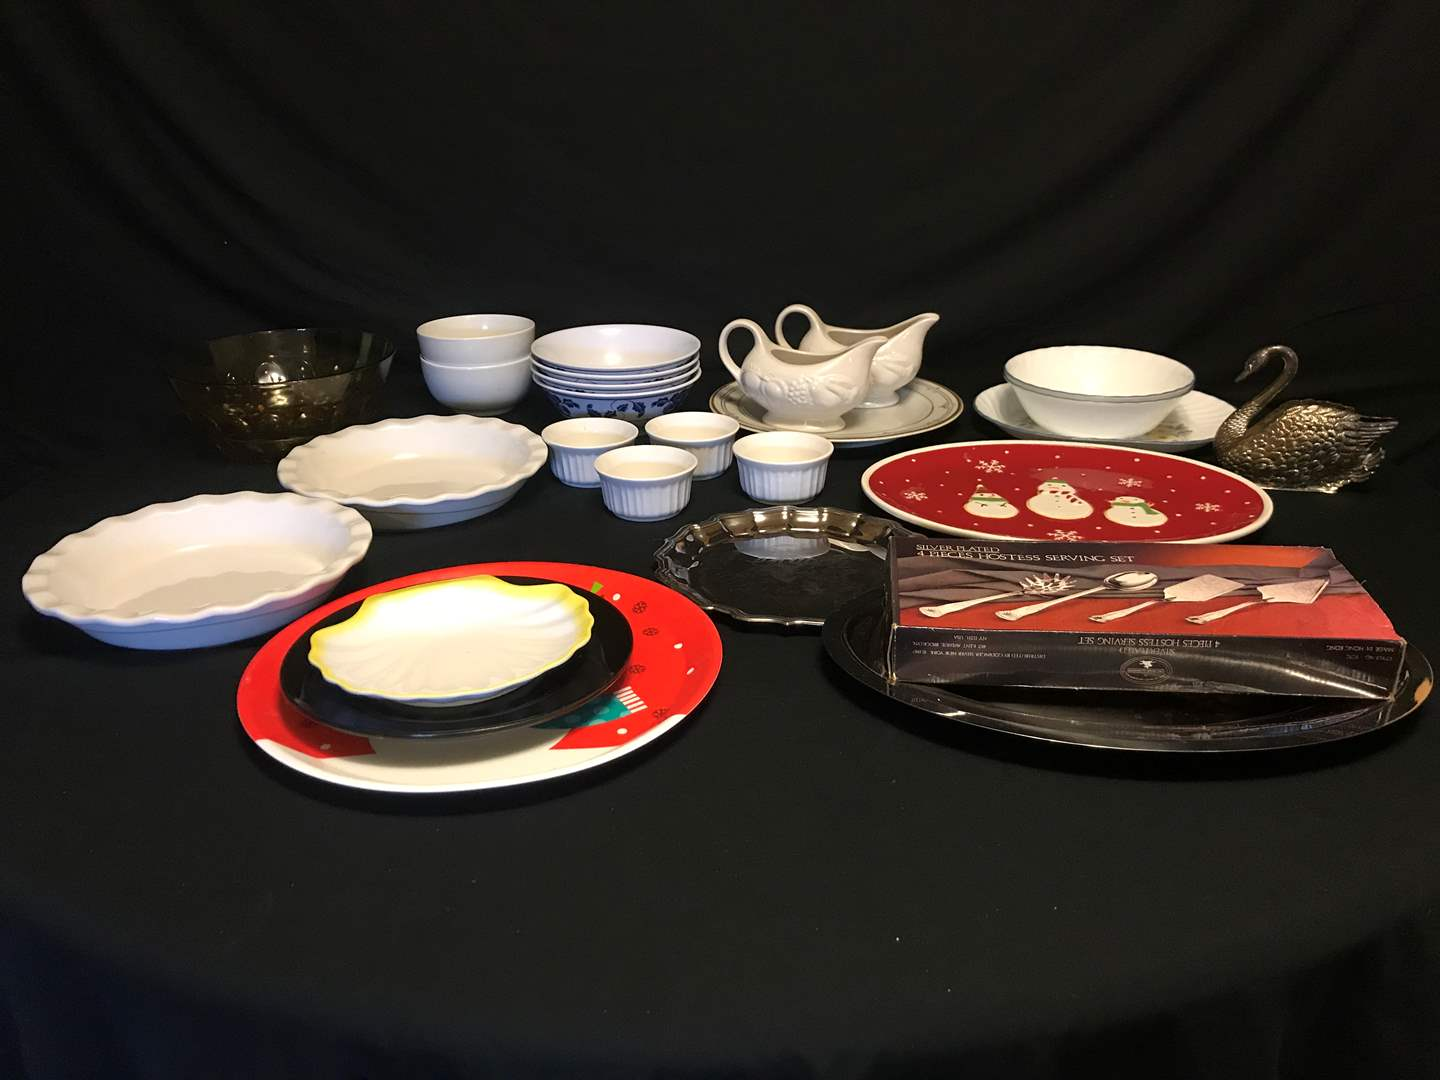 Lot # 59 - Selection of Bowls, Serving Dishes, Some Corelle Bowls, Gravy Dishes & Some Plastic Items (main image)